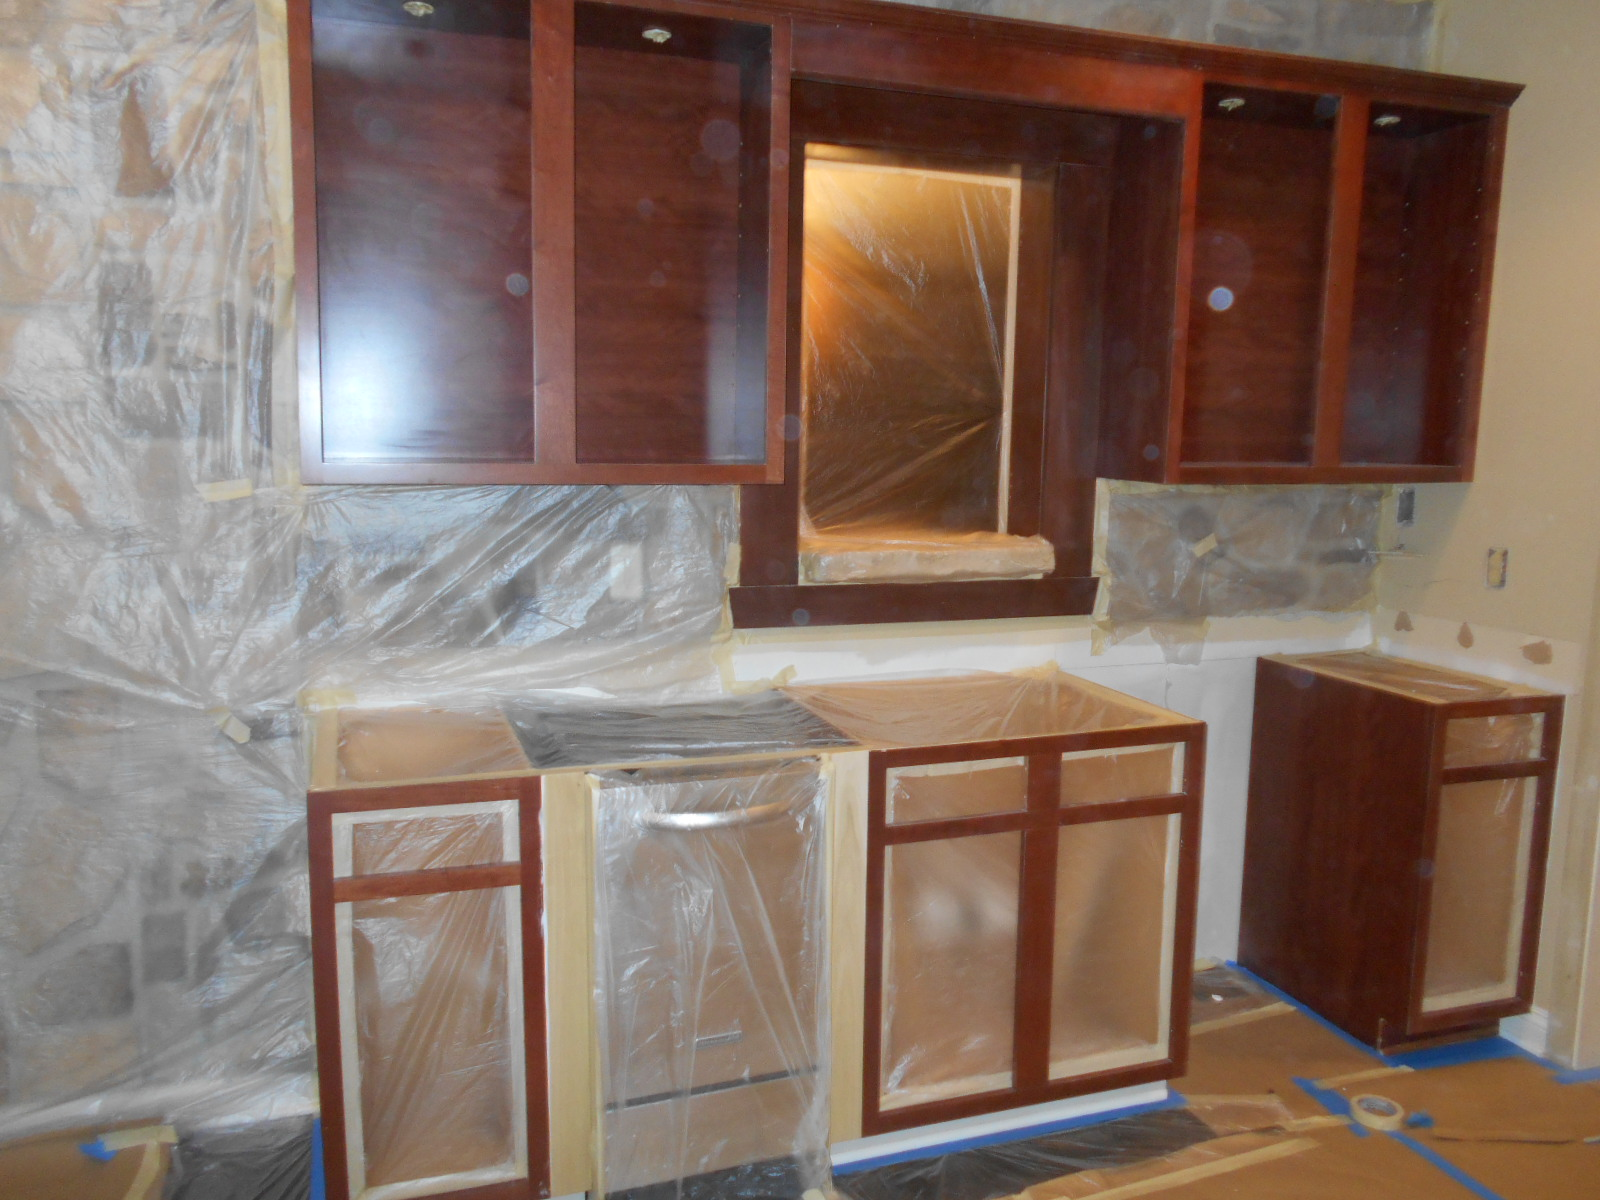 Cabinet Painting - Prep